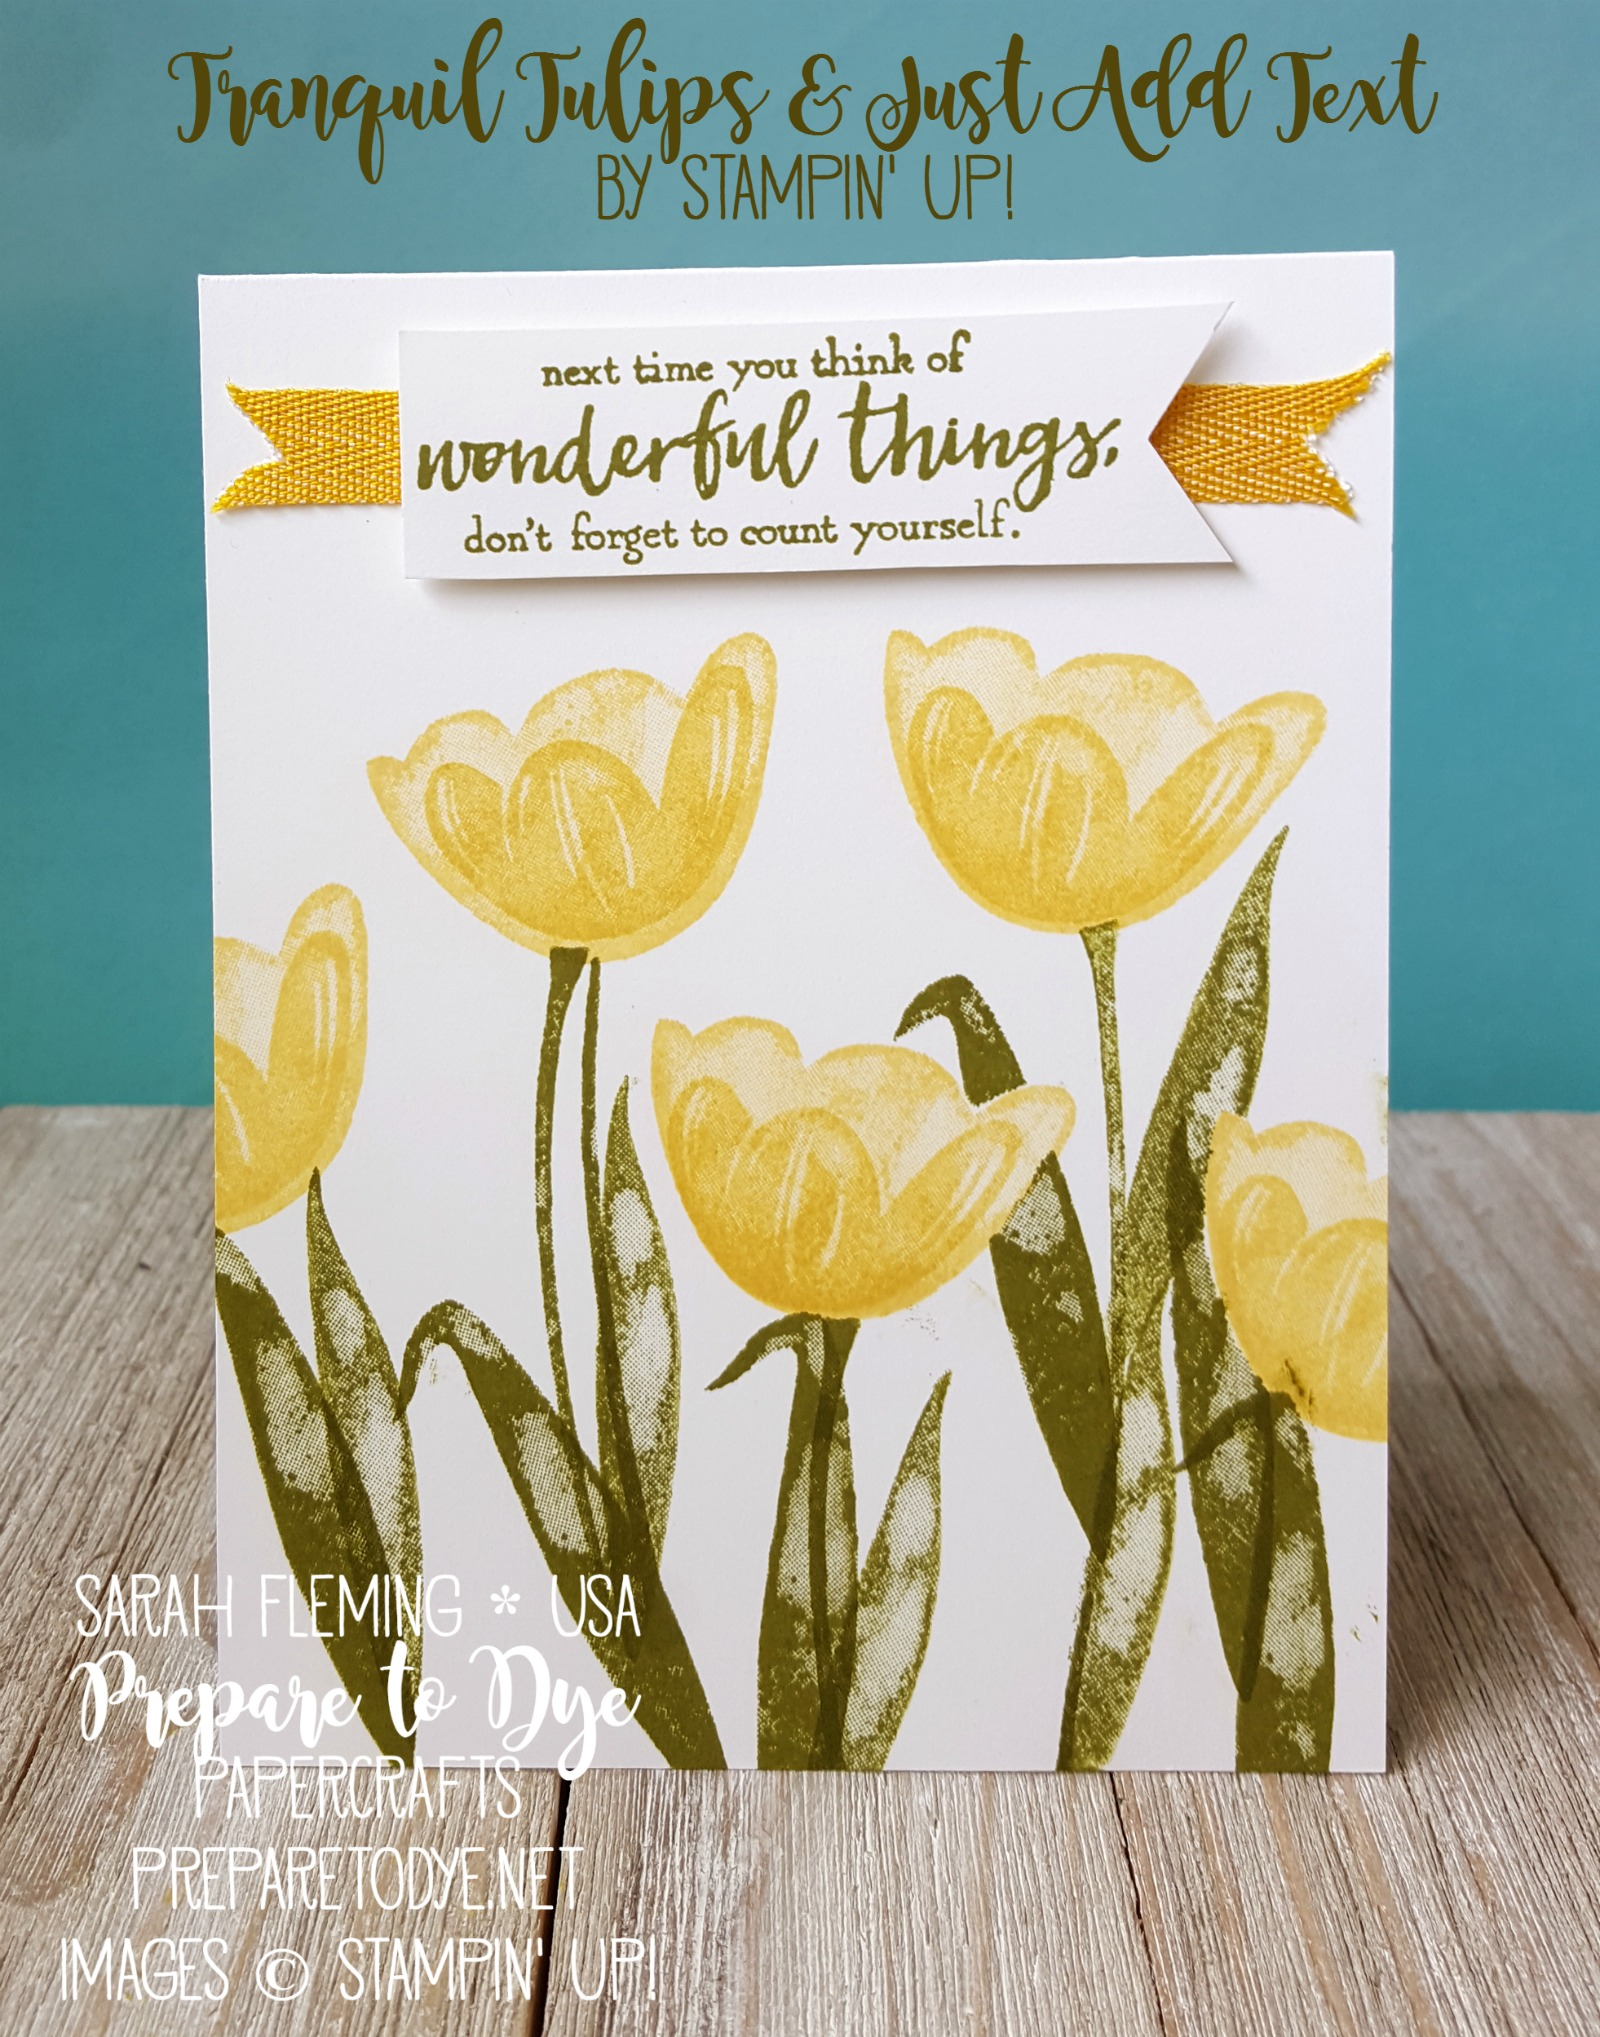 Stampin' Up! Tranquil Tulips and Just Add Text with Crushed Curry Mini Chevron Ribbon